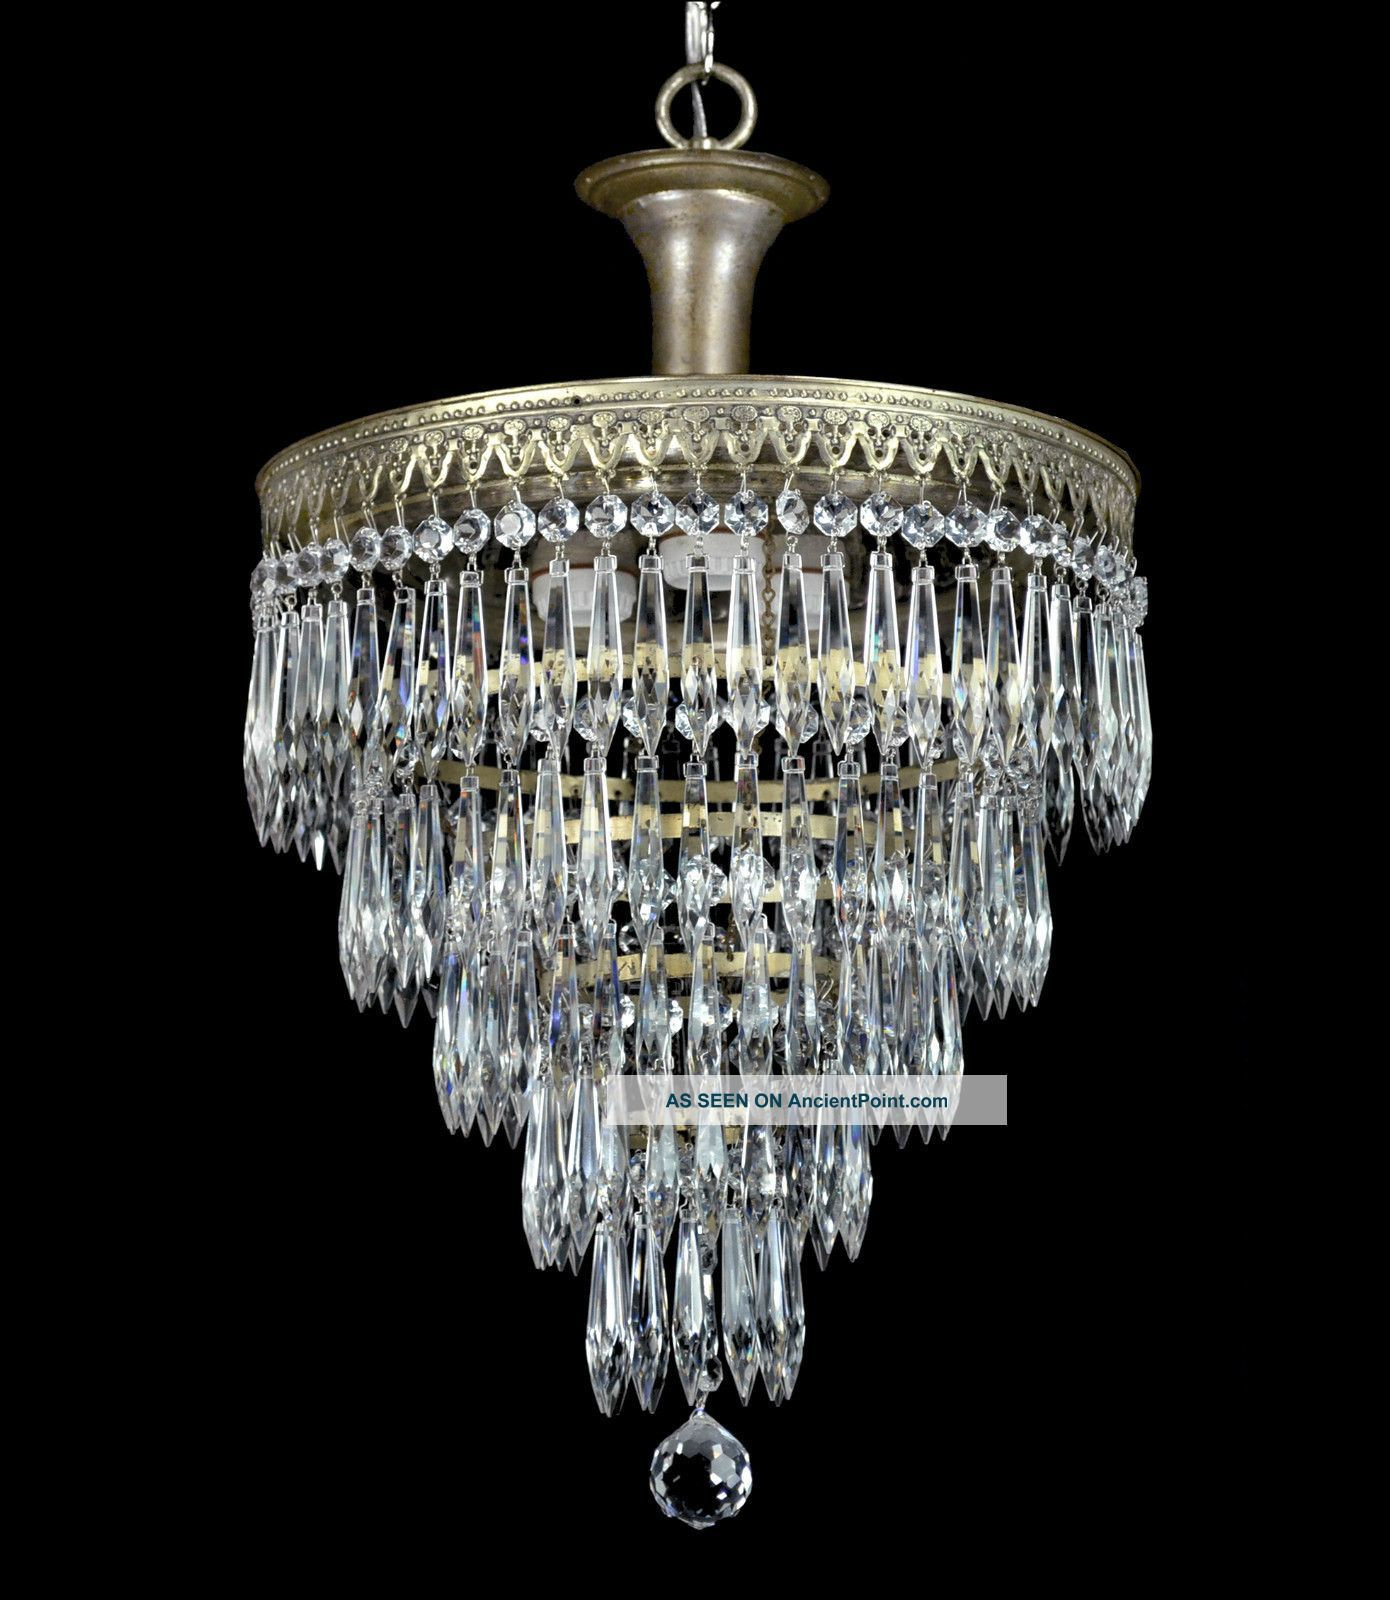 Vintage Wedding Cake Antique Chandelier Pendant Crystal Empire Art